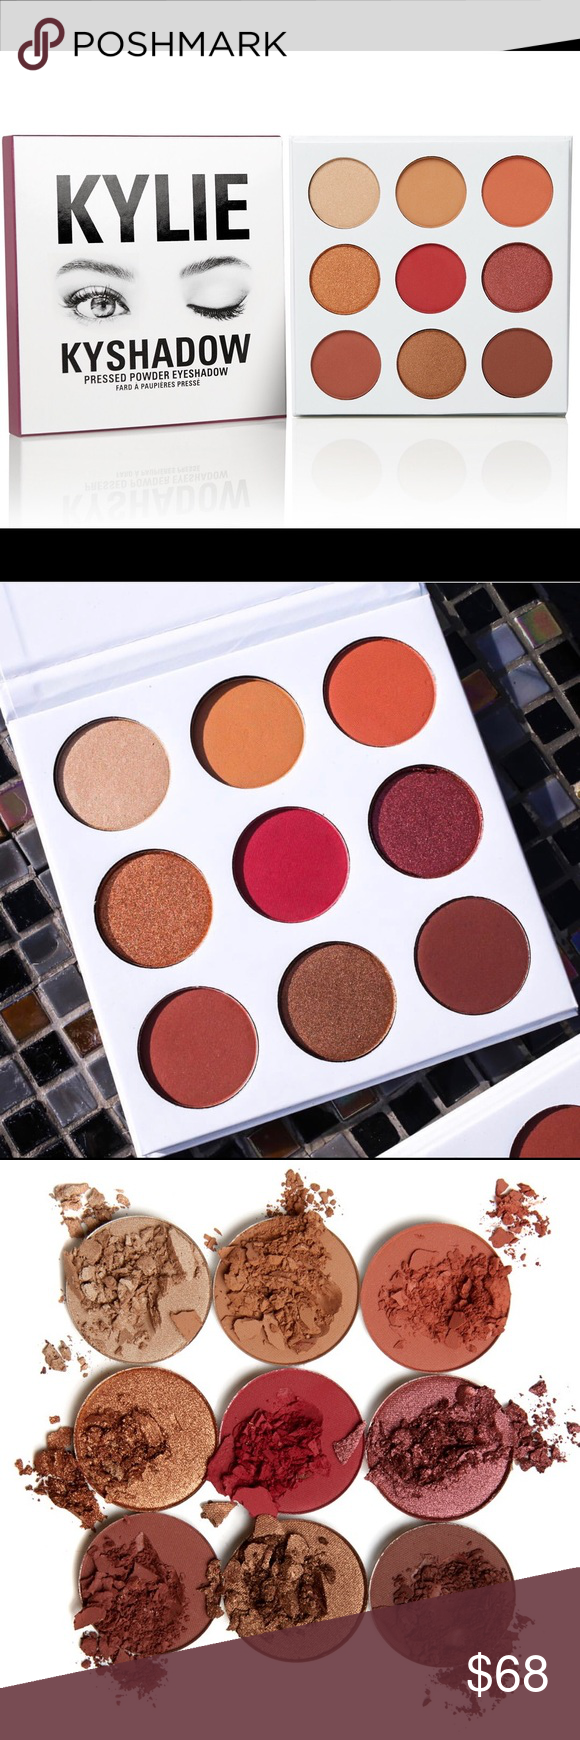 KYLIE JENNER KYSHADOW THE BURGUNDY PALETTE 🍁 The new sold out Kylie Jenner Kyshadow Burgundy Palette.  This eyeshadow is COMPLETELY sold out in stores.  Brand new, unopened, and in perfect condition!  Don't be shy about making offers.  Feel free to comment with any questions ❤️❤️ Kylie Cosmetics Makeup Eyeshadow